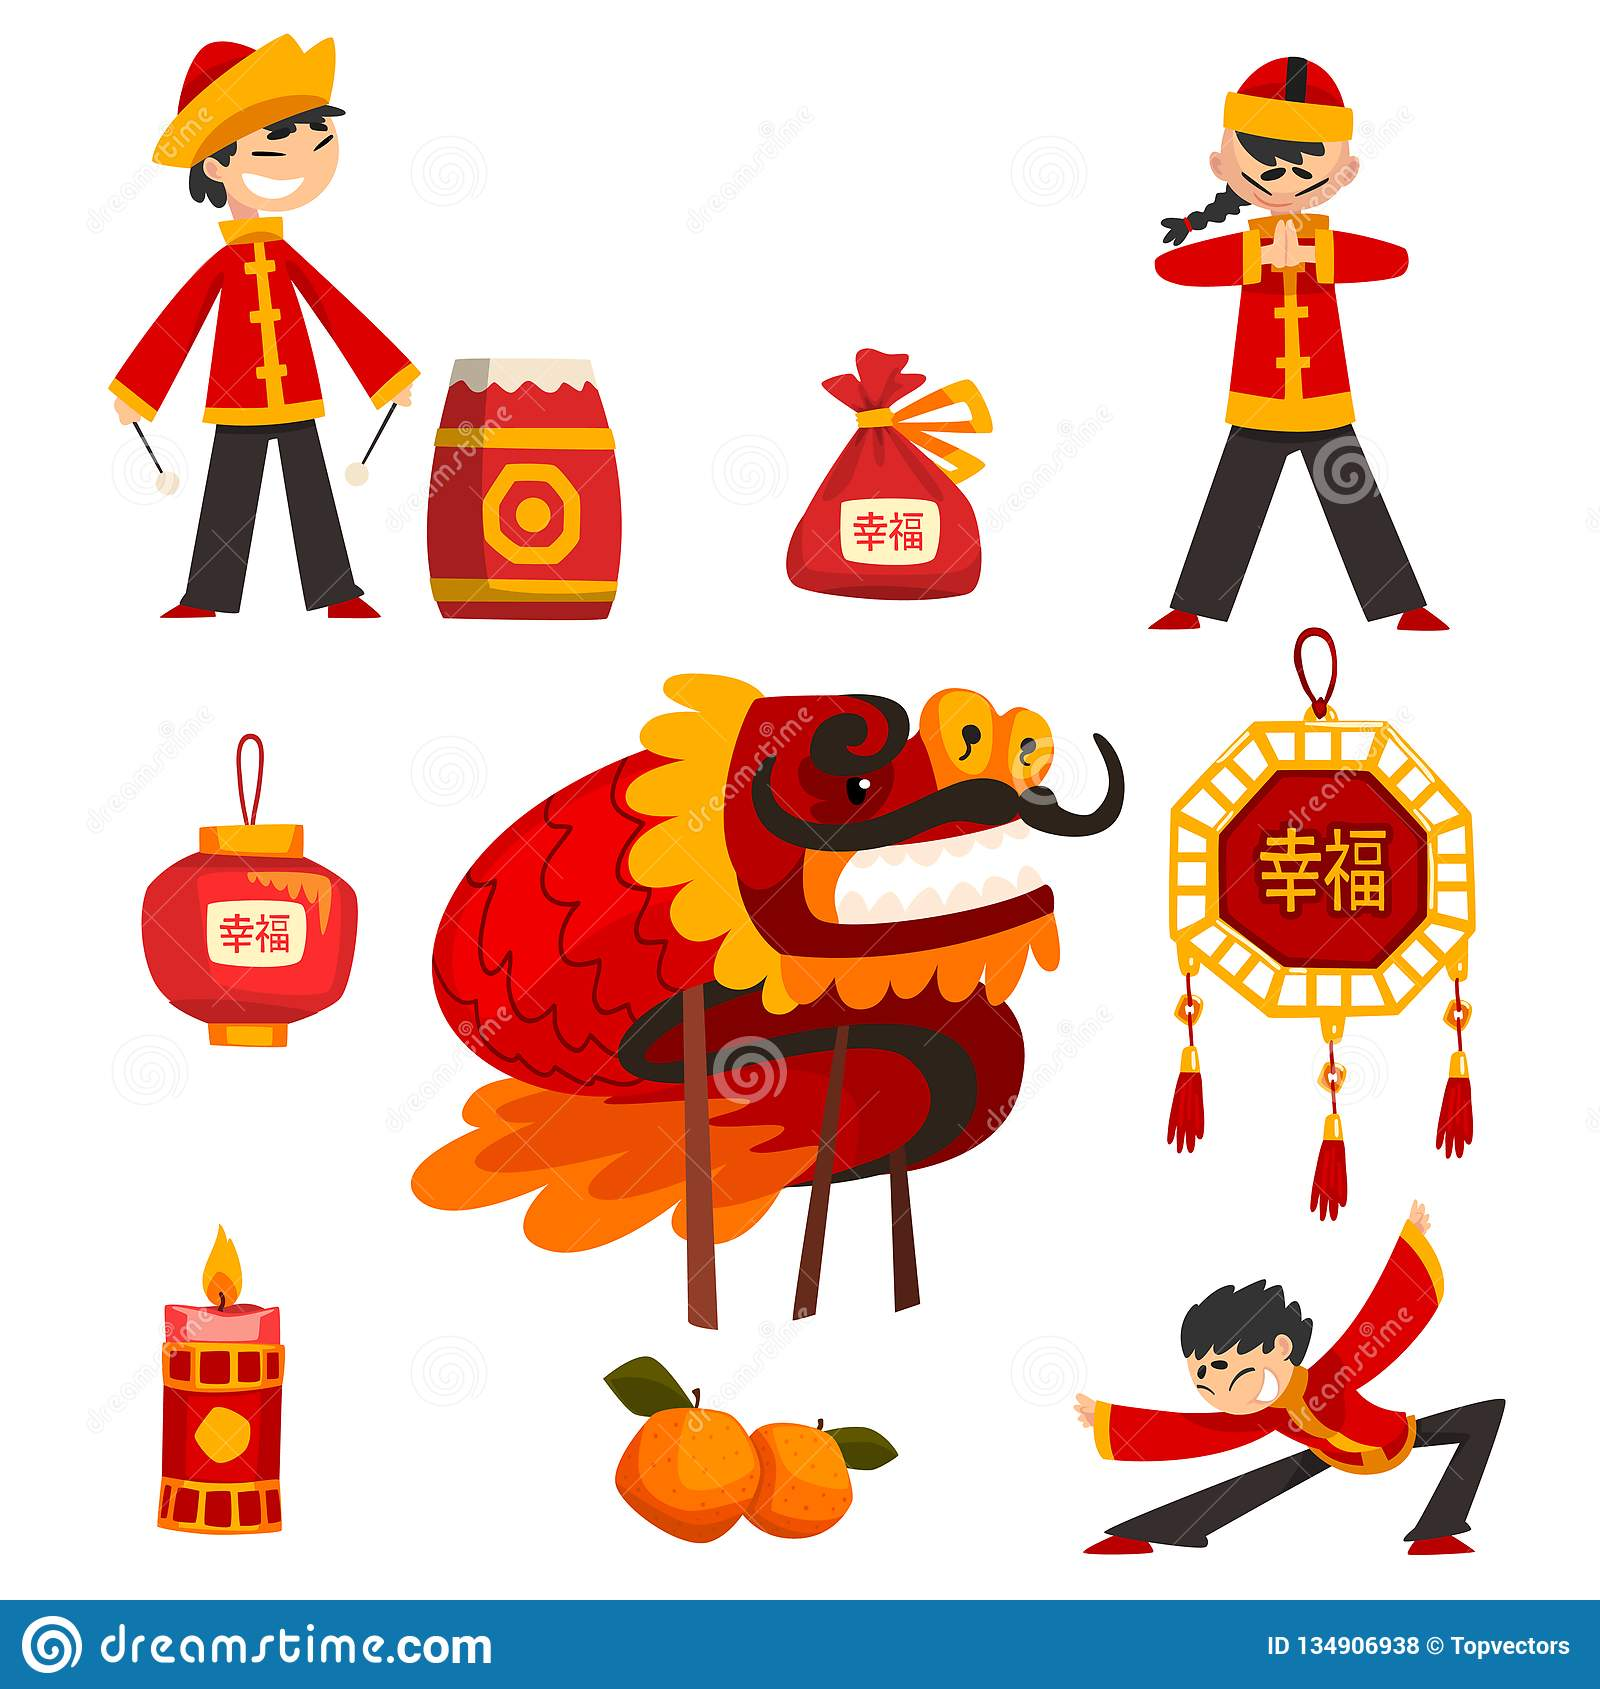 Collection of Chinese New Year decoration elements, boy in traditional costume, candle, dragon, lucky bag, tangerine